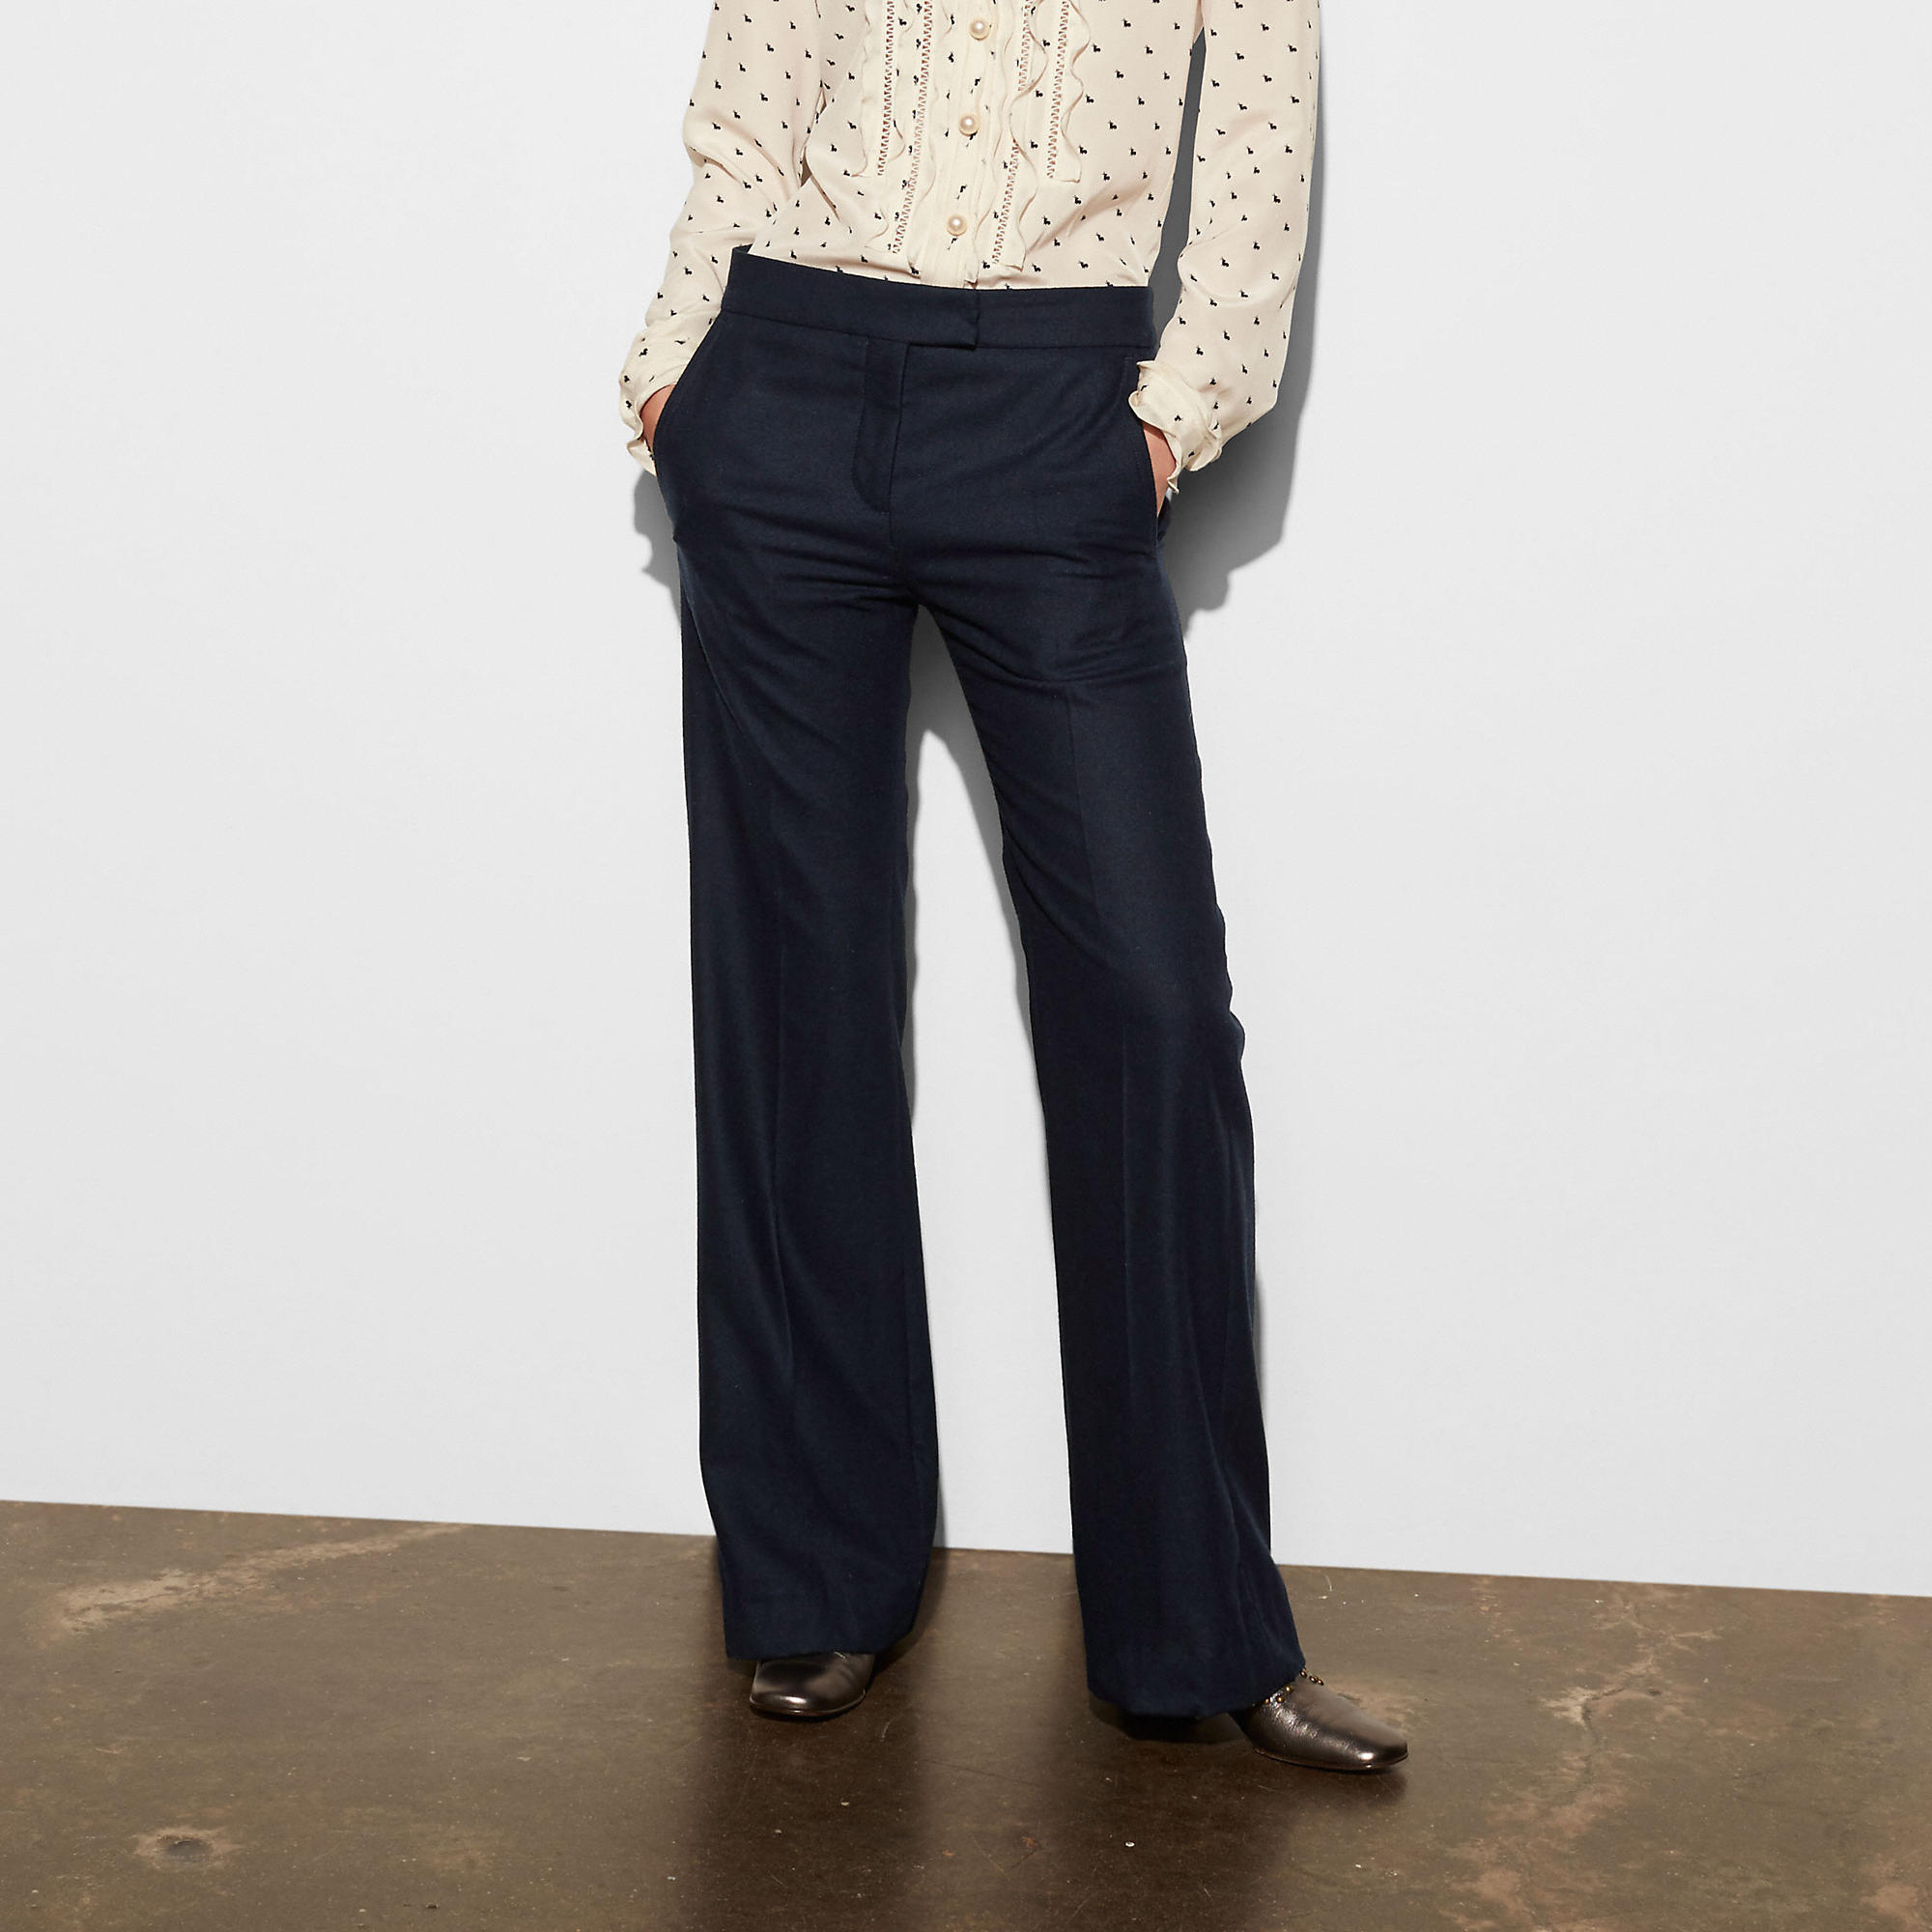 Coach Tailored Pants